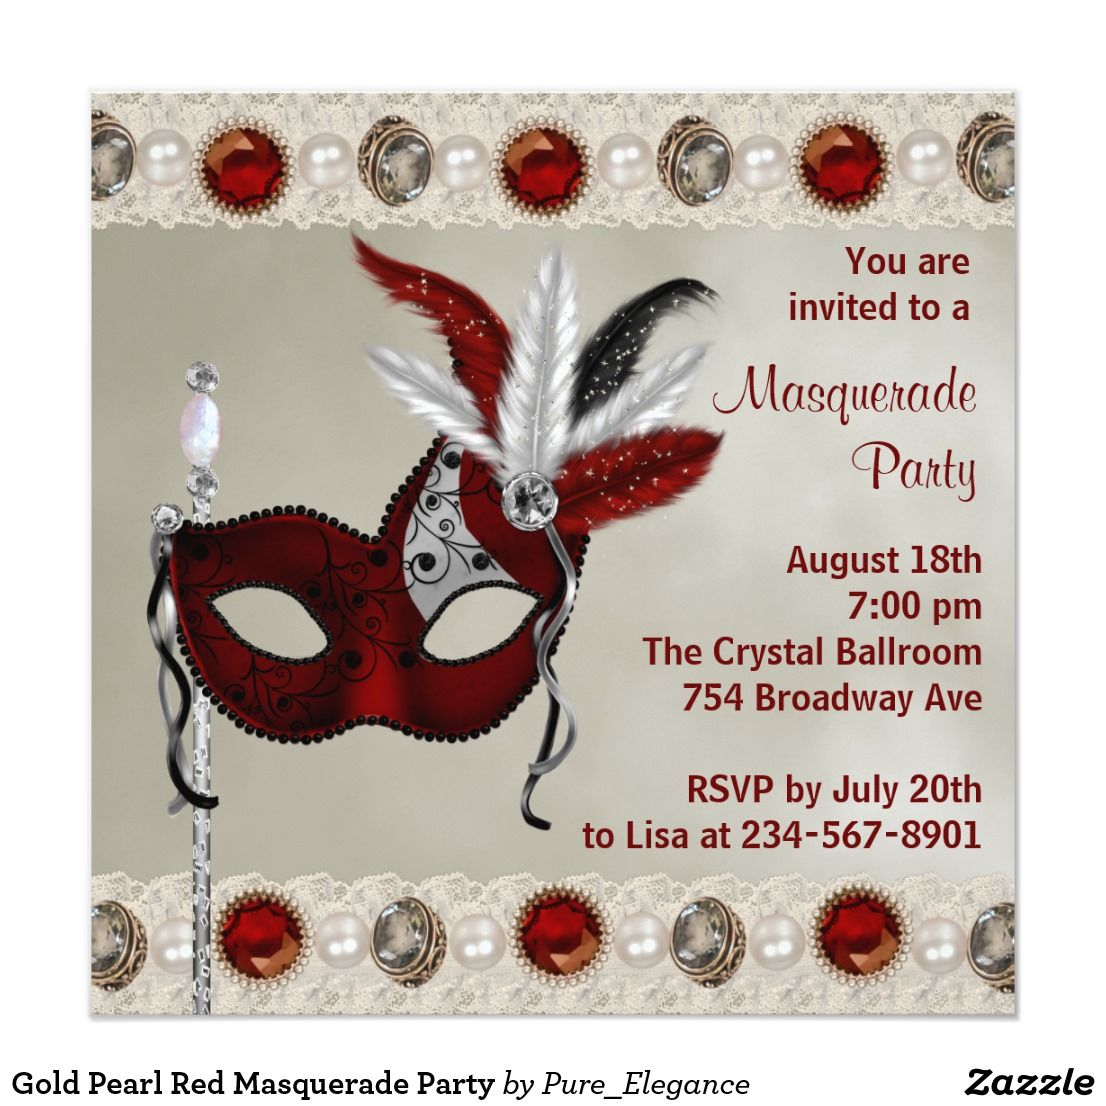 Gold Pearl Red Masquerade Party Card | Masquerade party invitations ...